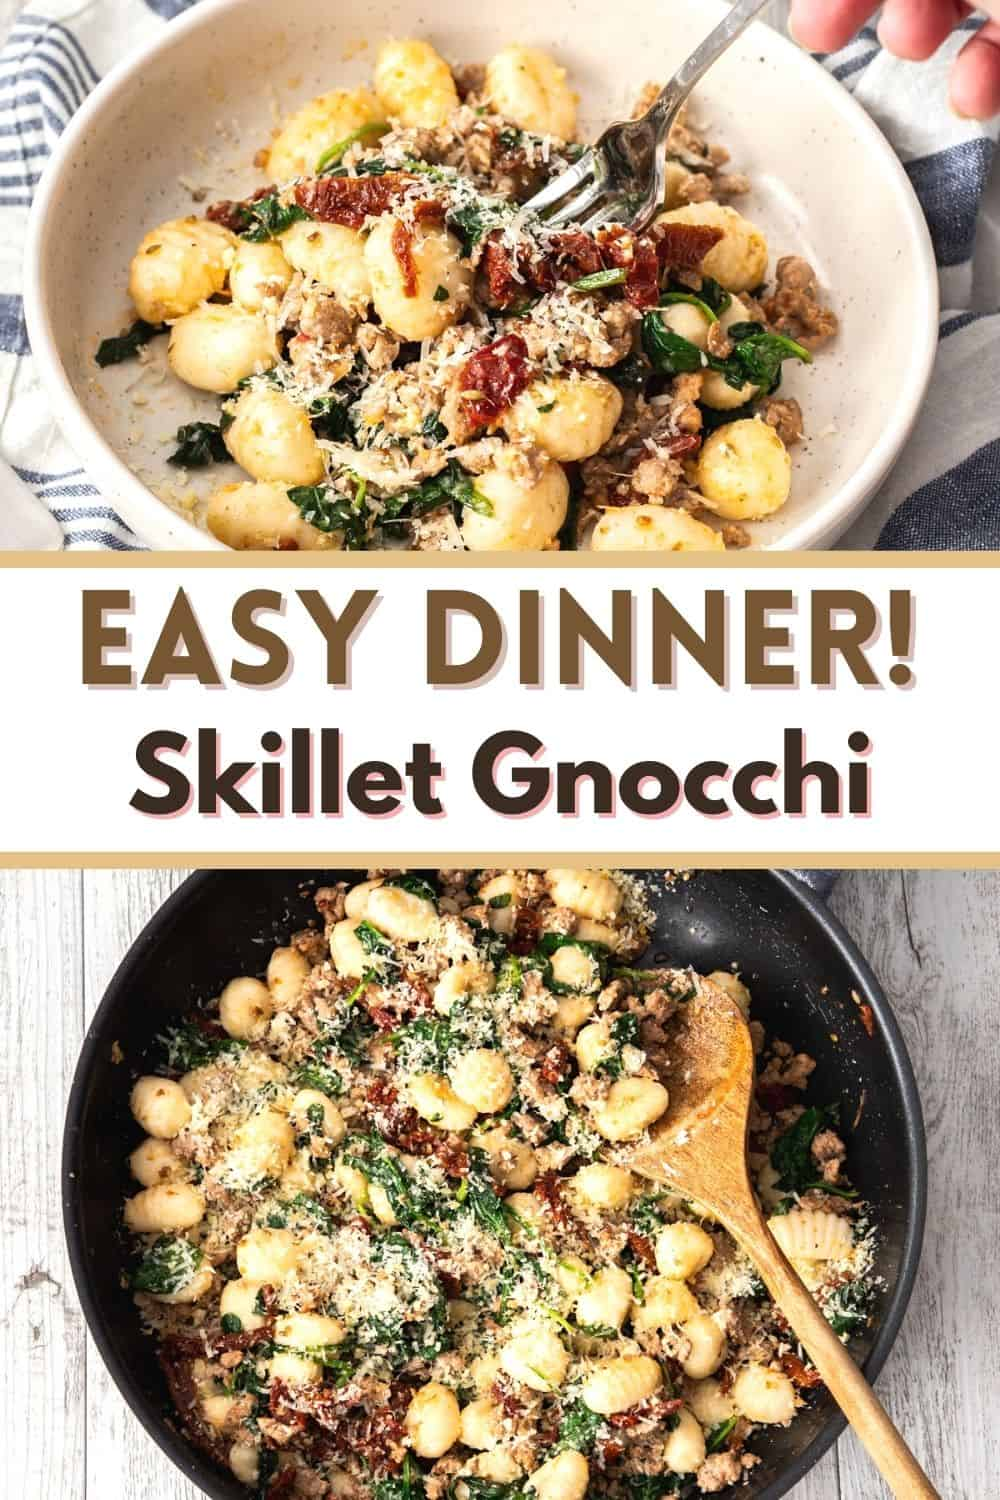 This easy gnocchi recipe is made in one skillet with spinach, sausage and sun-dried tomatoes. A delicious weeknight meal bursting with Italian flavors the whole family will enjoy!